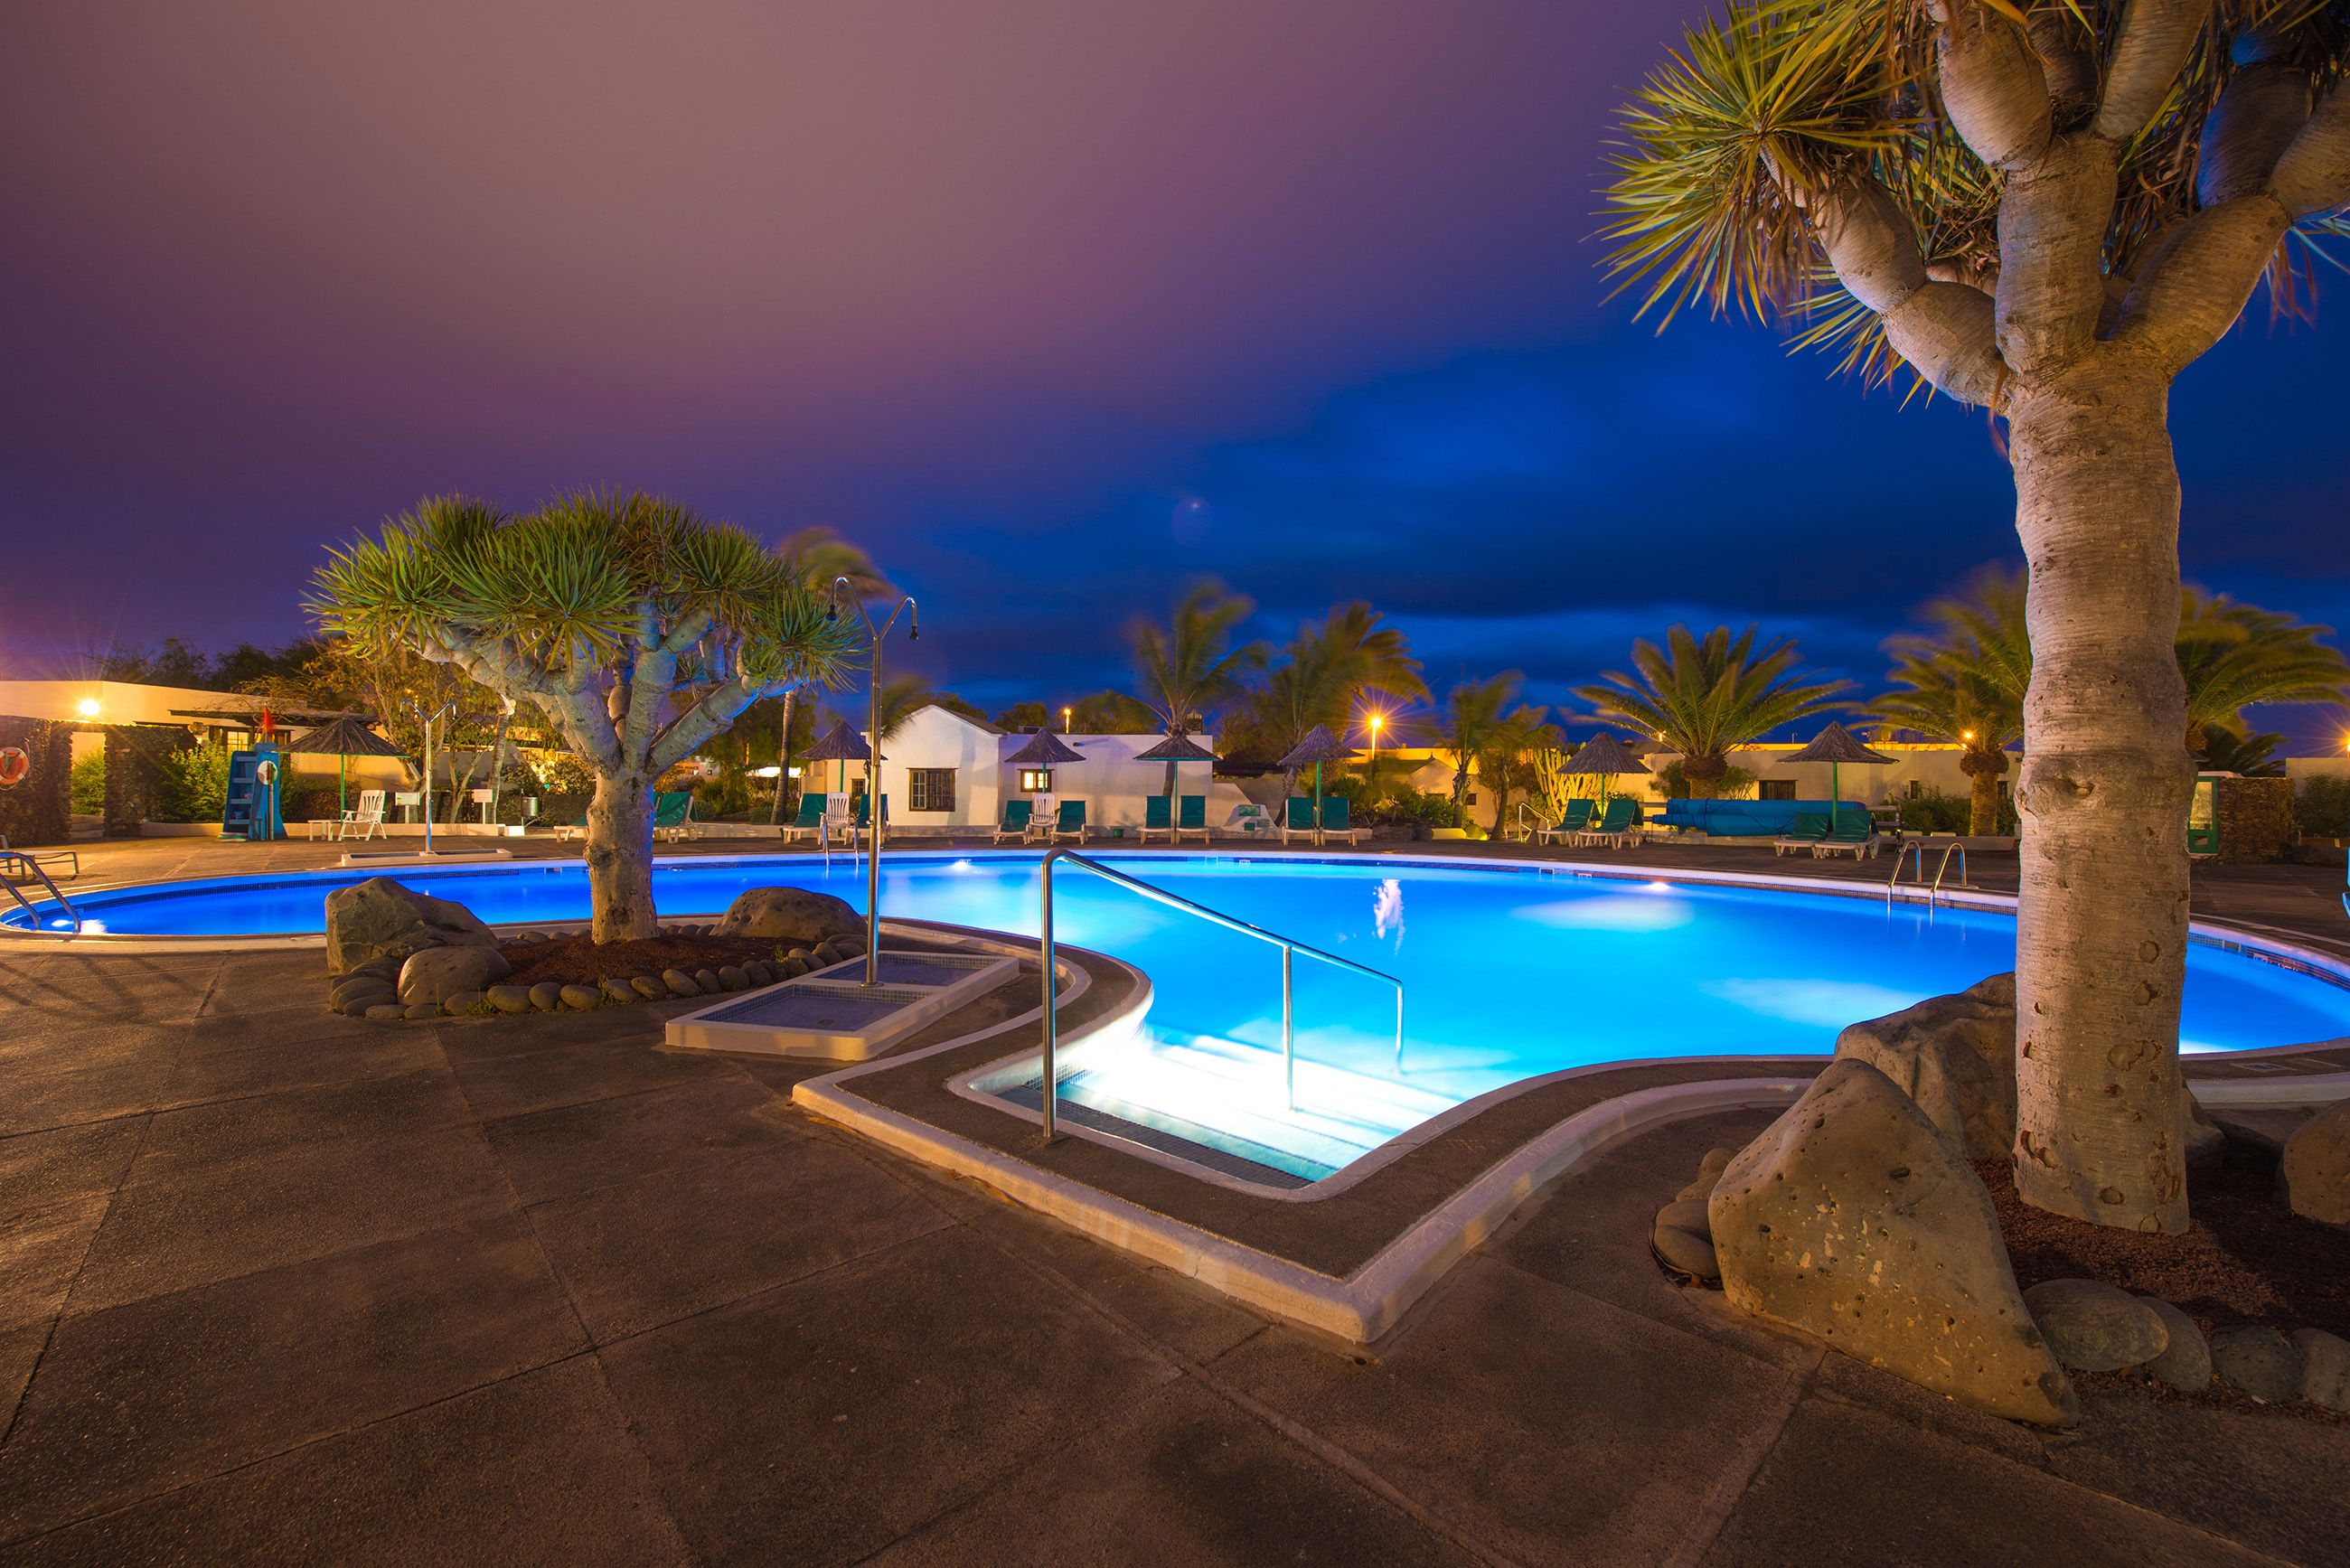 Las Casitas Swimming Pool at night